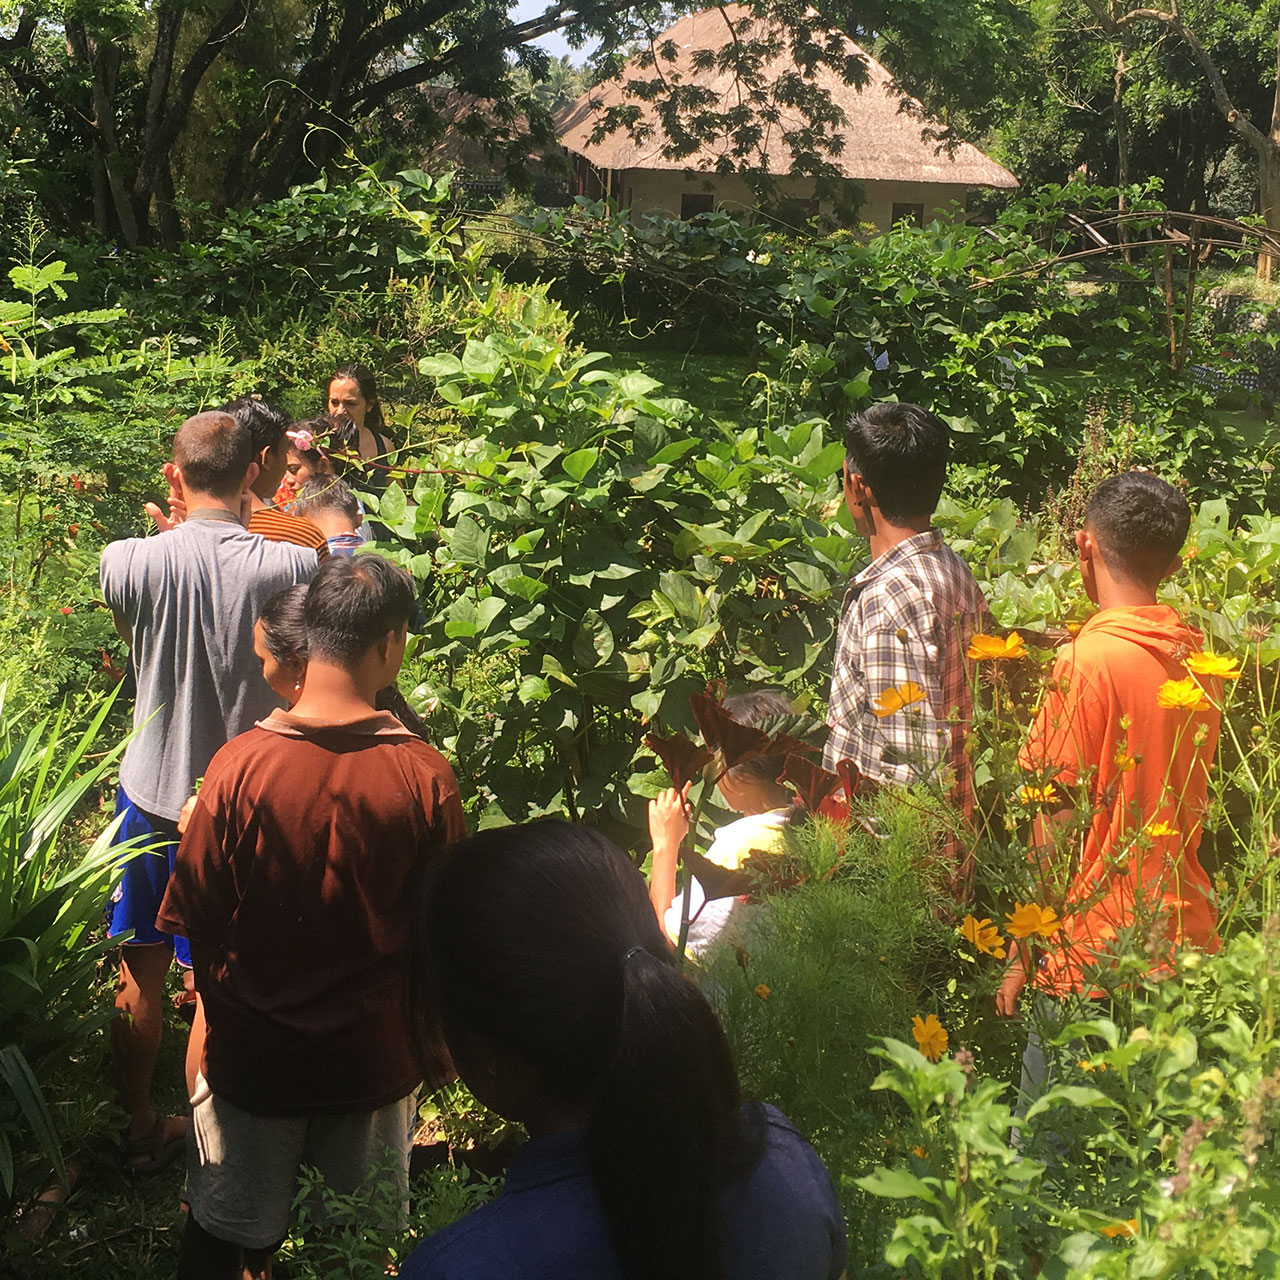 BGreener is a Bali based community of businesses and individuals making an environmental different on the island and supporting each other.